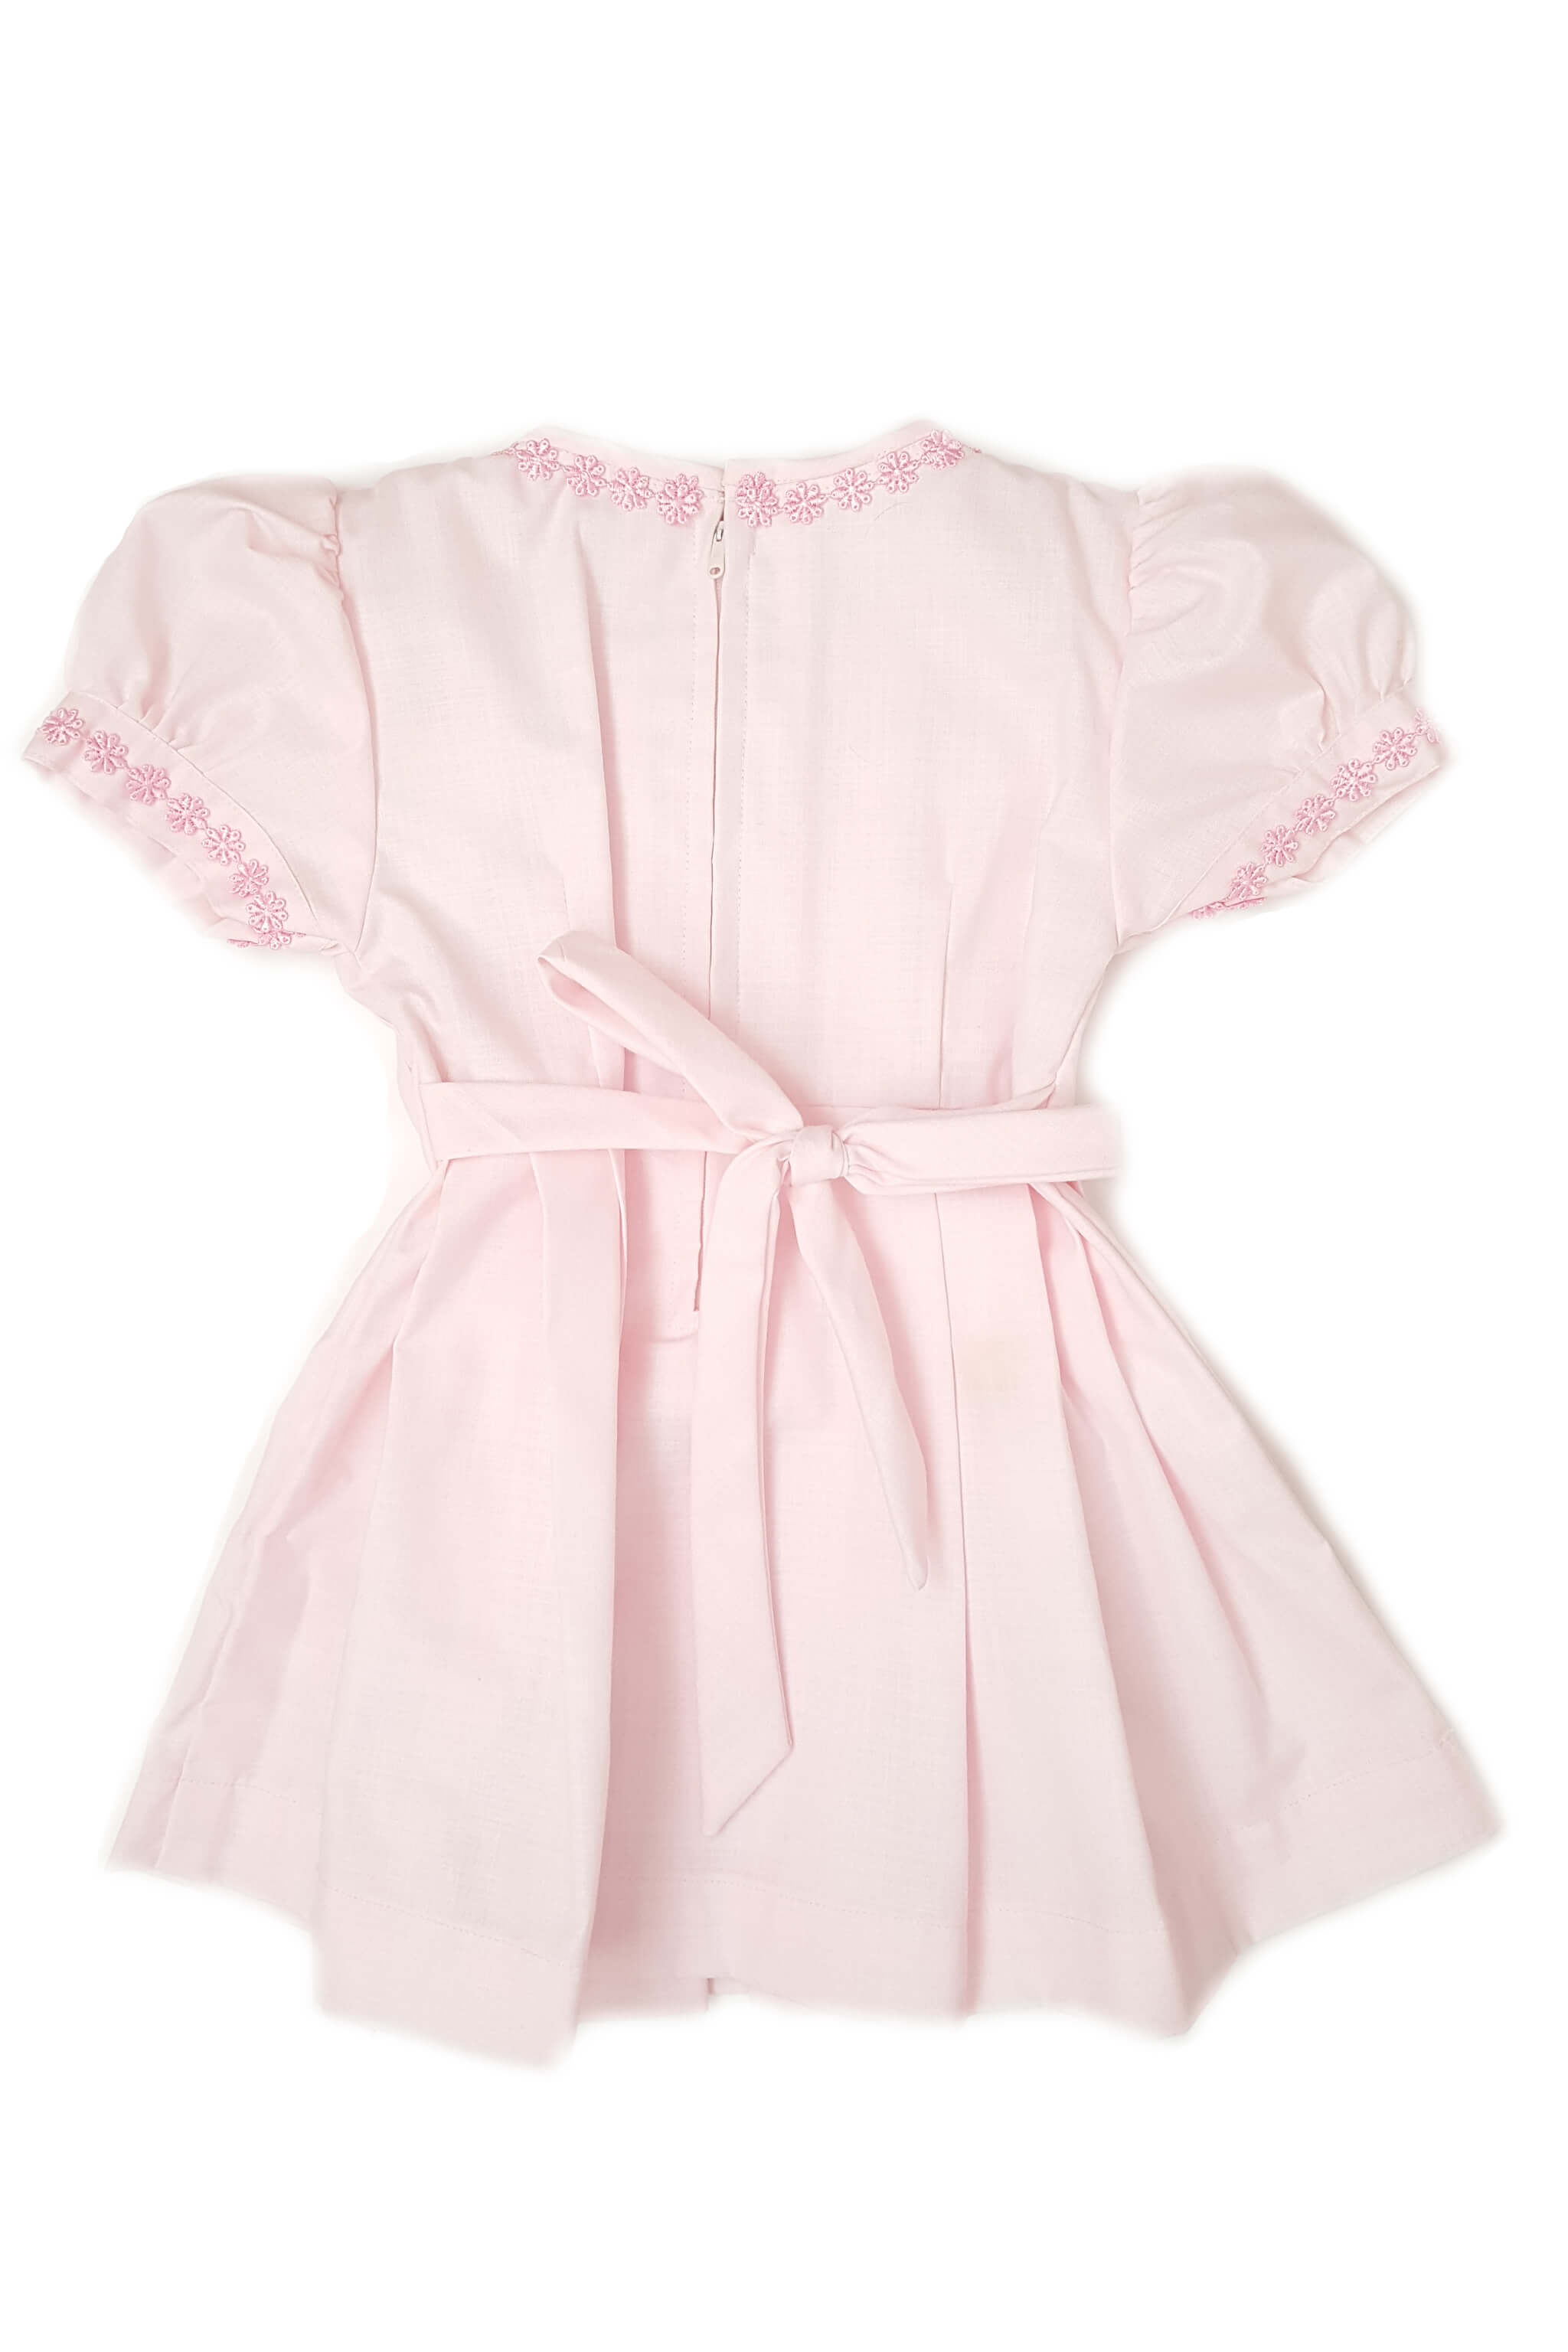 Back of pastel pink pleated dress with hand-embroidered rosettes along the bodice box pleats cascading down the dress with zippered back and sash to tie at waist for baby girls perfect for the bridal party